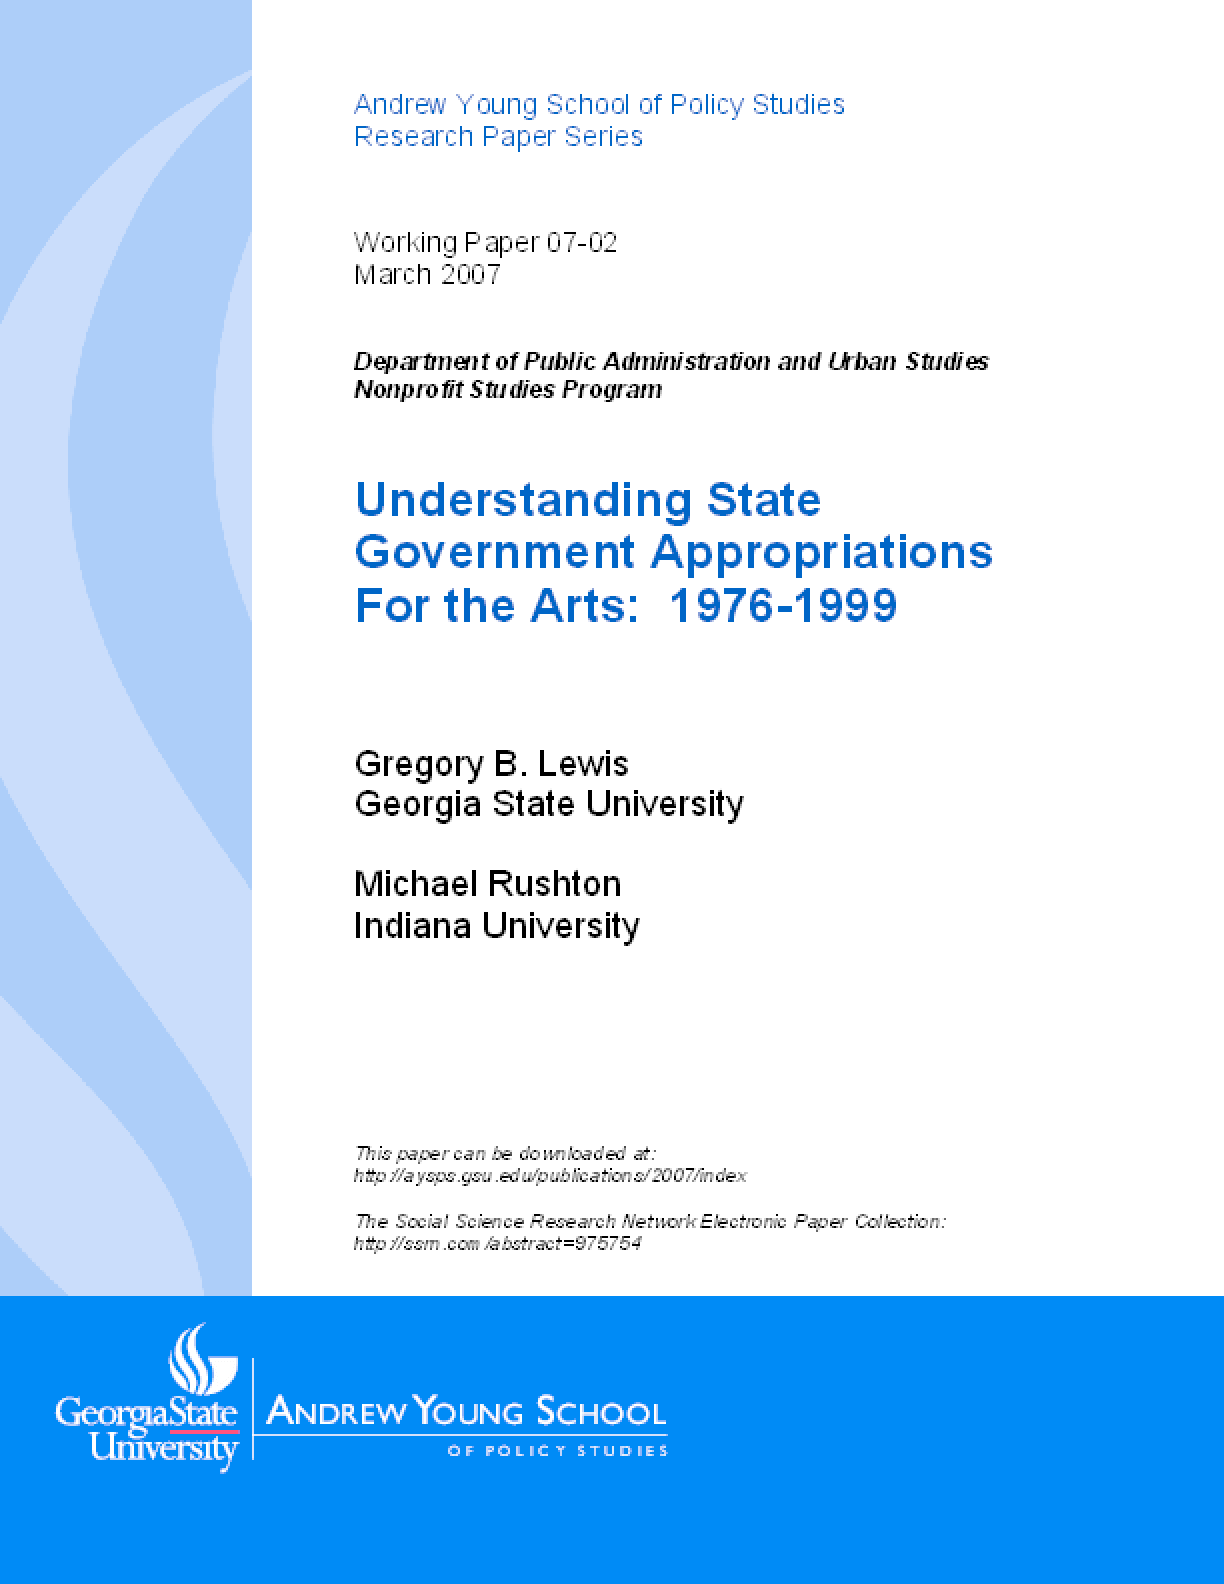 Understanding State Government Appropriations For the Arts: 1976-1999